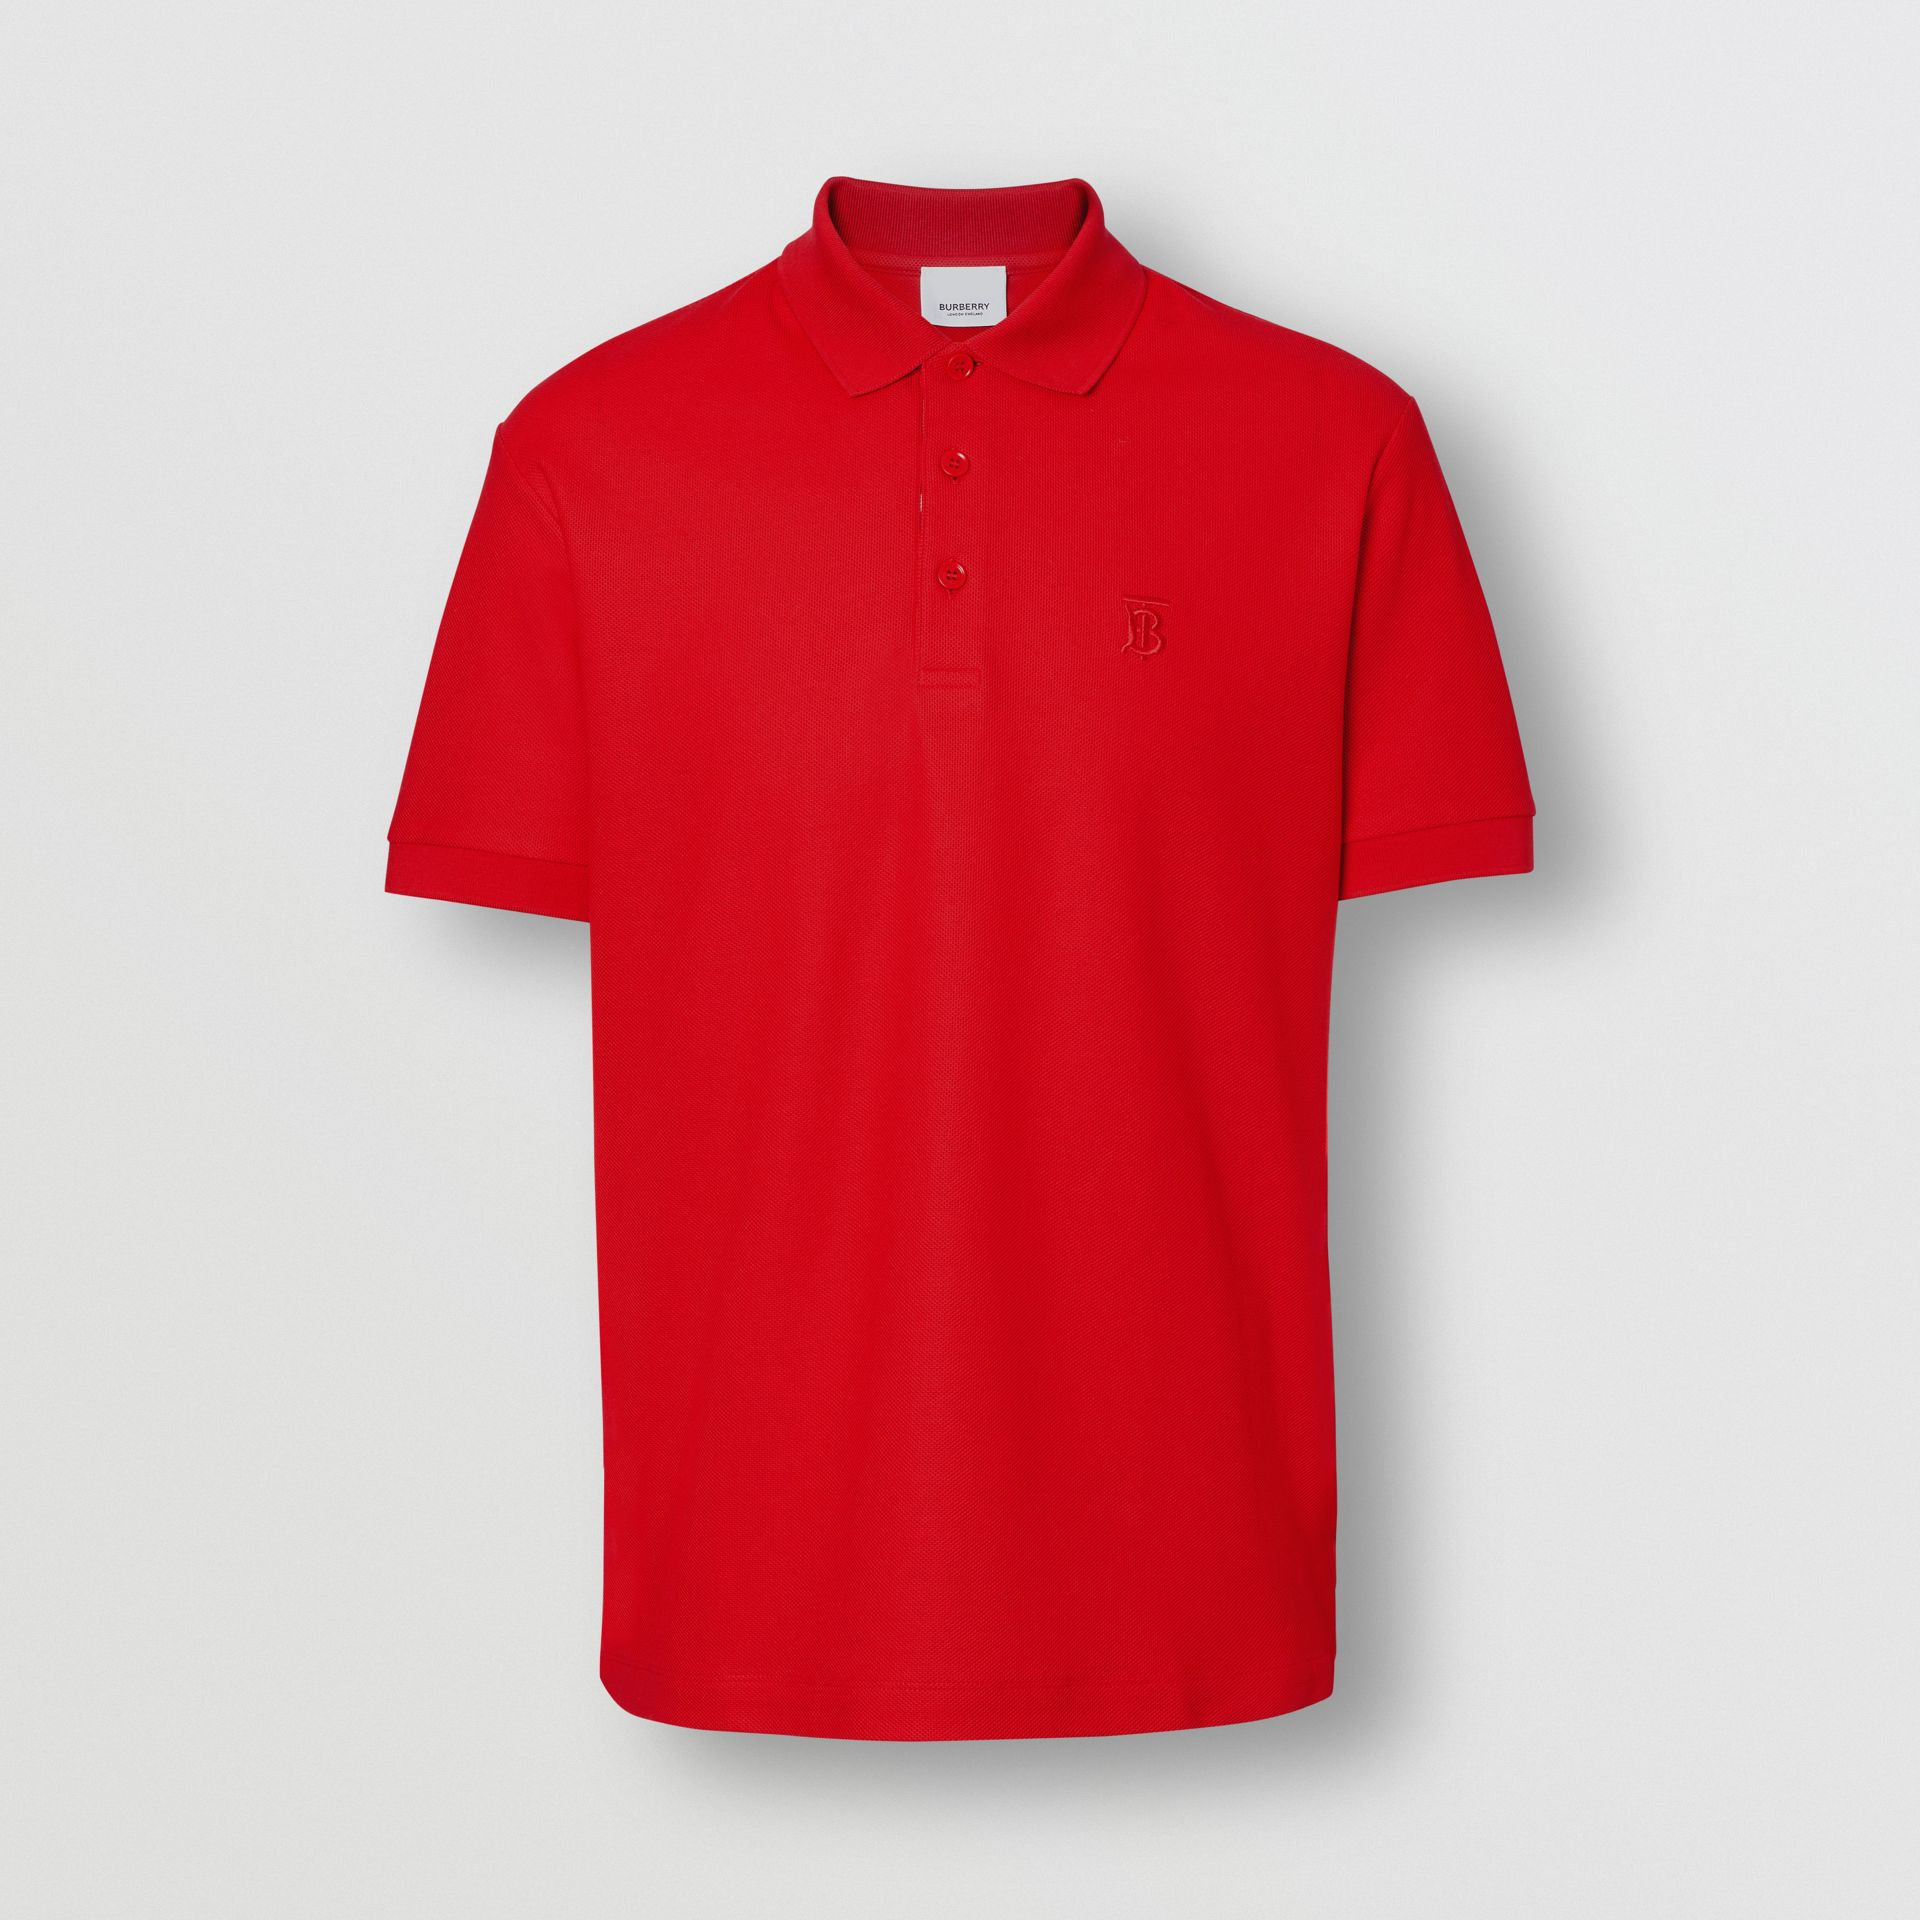 Monogram Motif Cotton Piqué Polo Shirt in Bright Red - Men | Burberry United Kingdom - gallery image 3